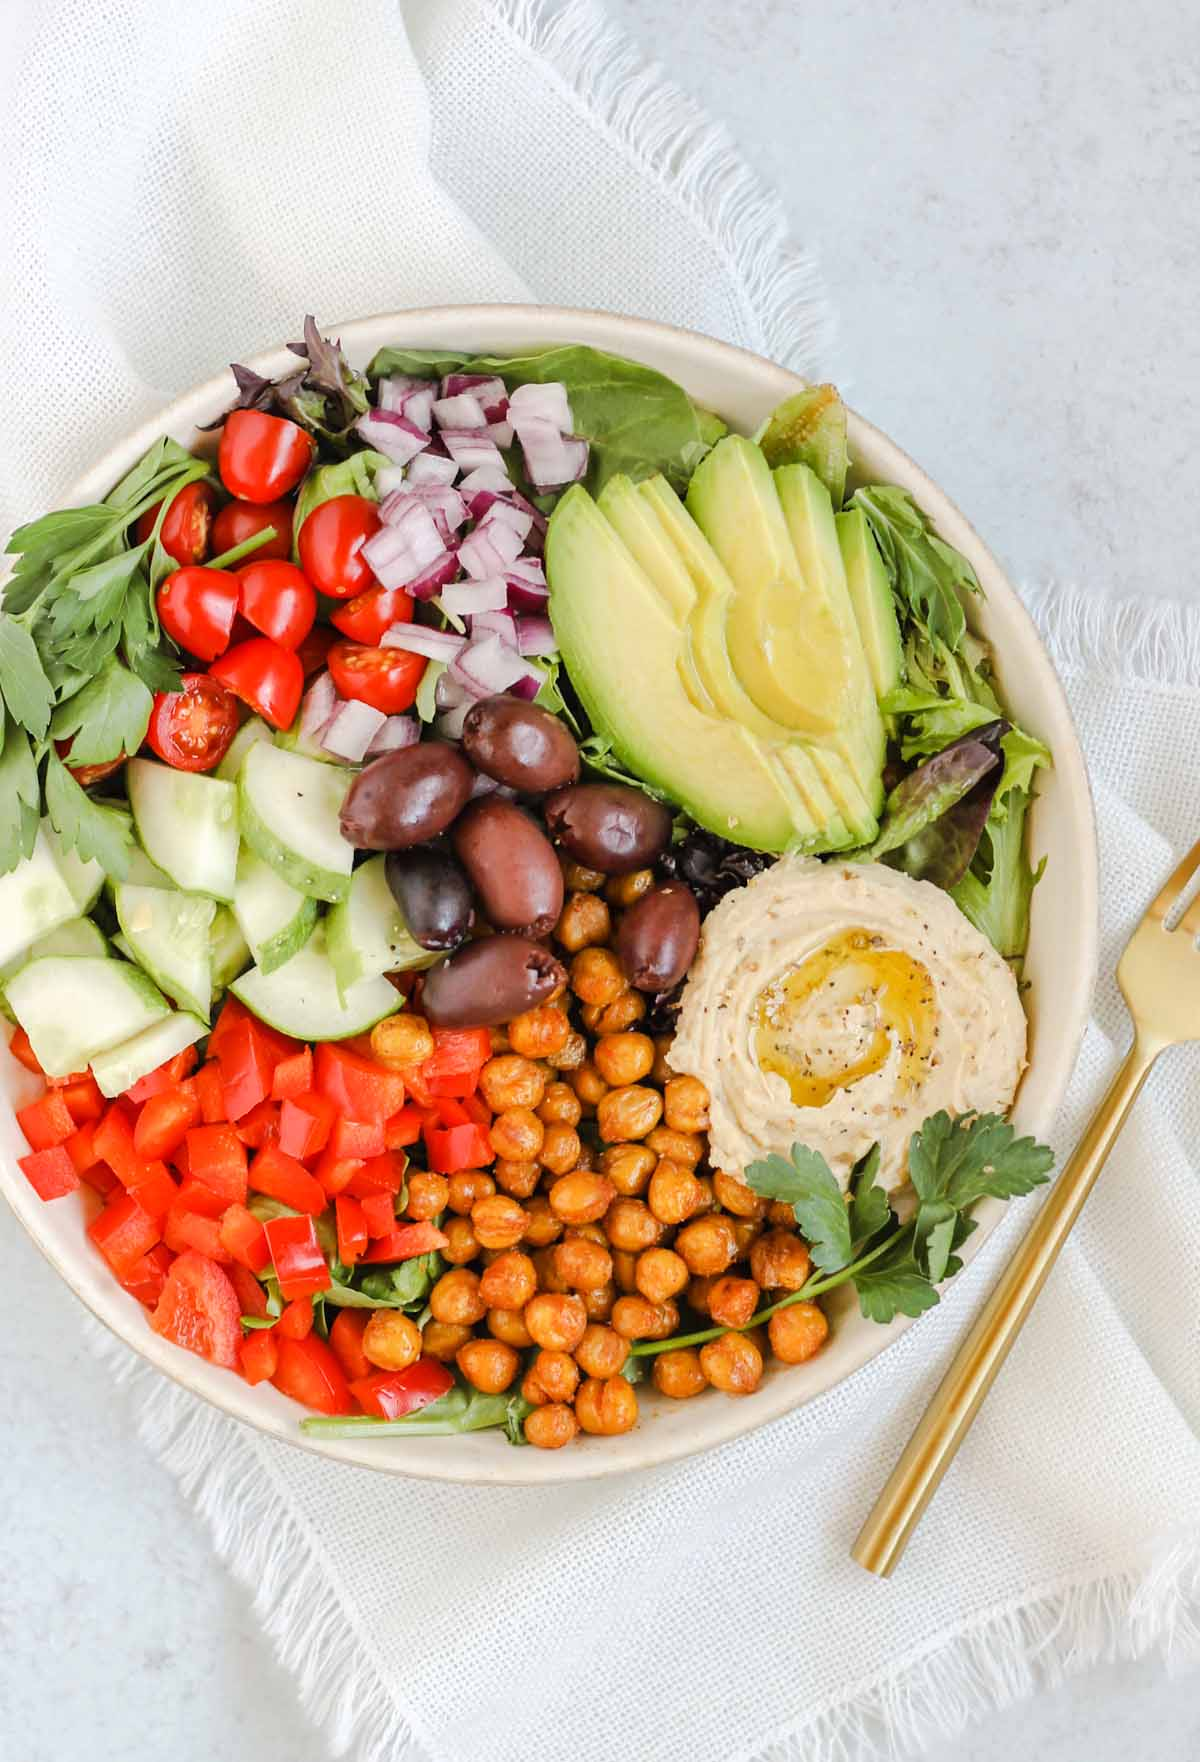 Mediterranean salad in a white bowl with a gold fork.